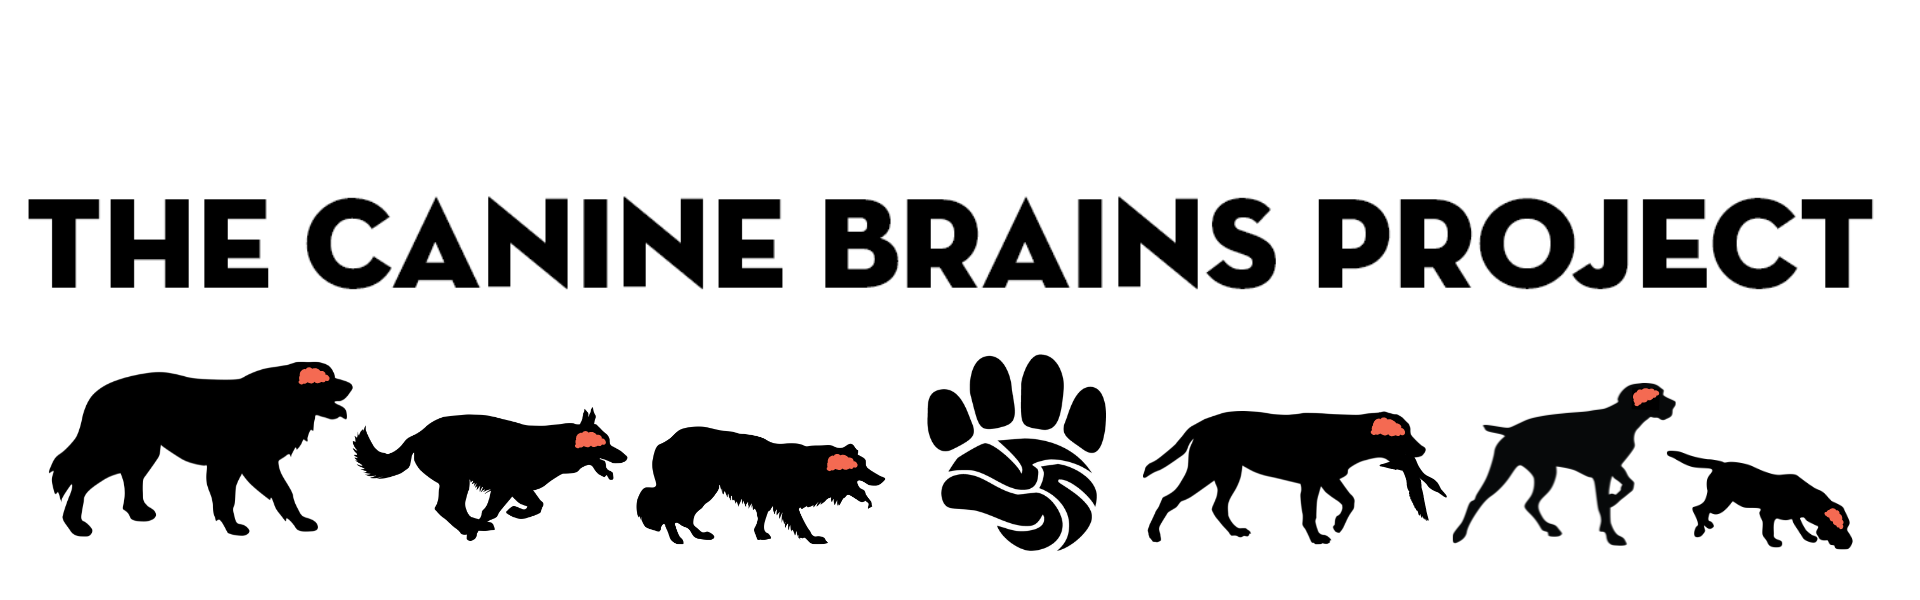 The Canine Brains Project